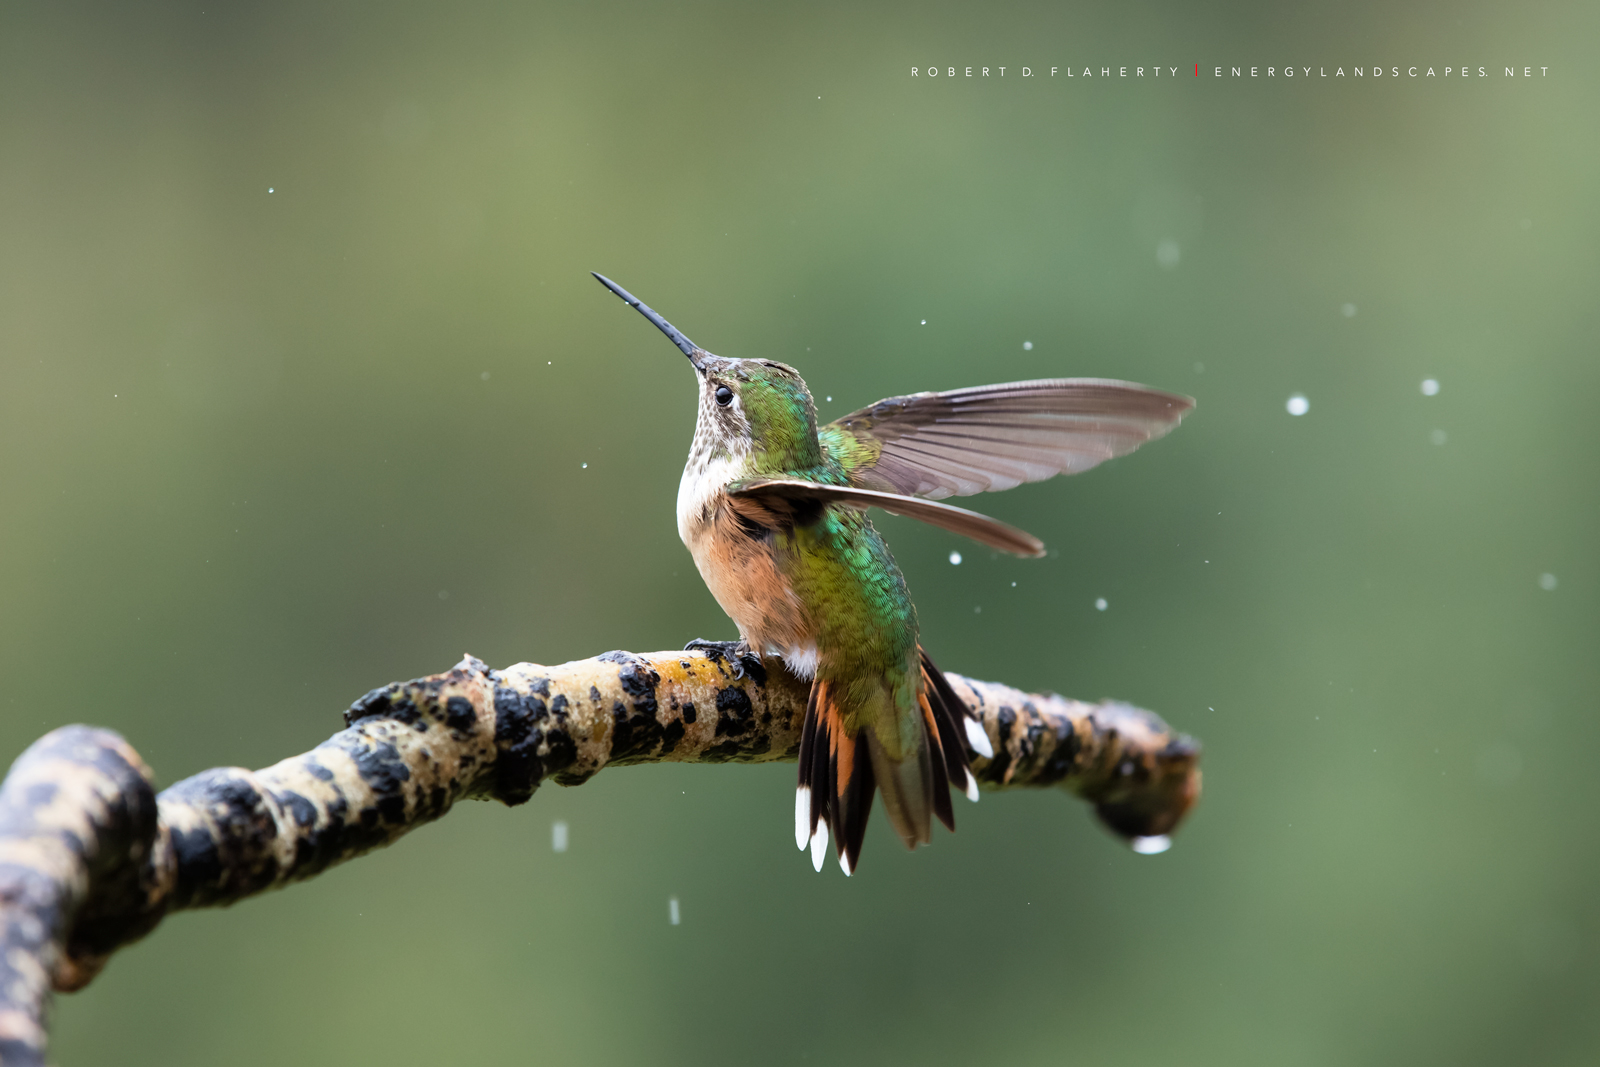 Rain Dance, hummingbird, hummingbirds, fine art photography, New Mexico, South Central Mountains, monsoon, Ruidoso, Ruidoso New Mexico, rain, Thunderstorm, fine art, photo